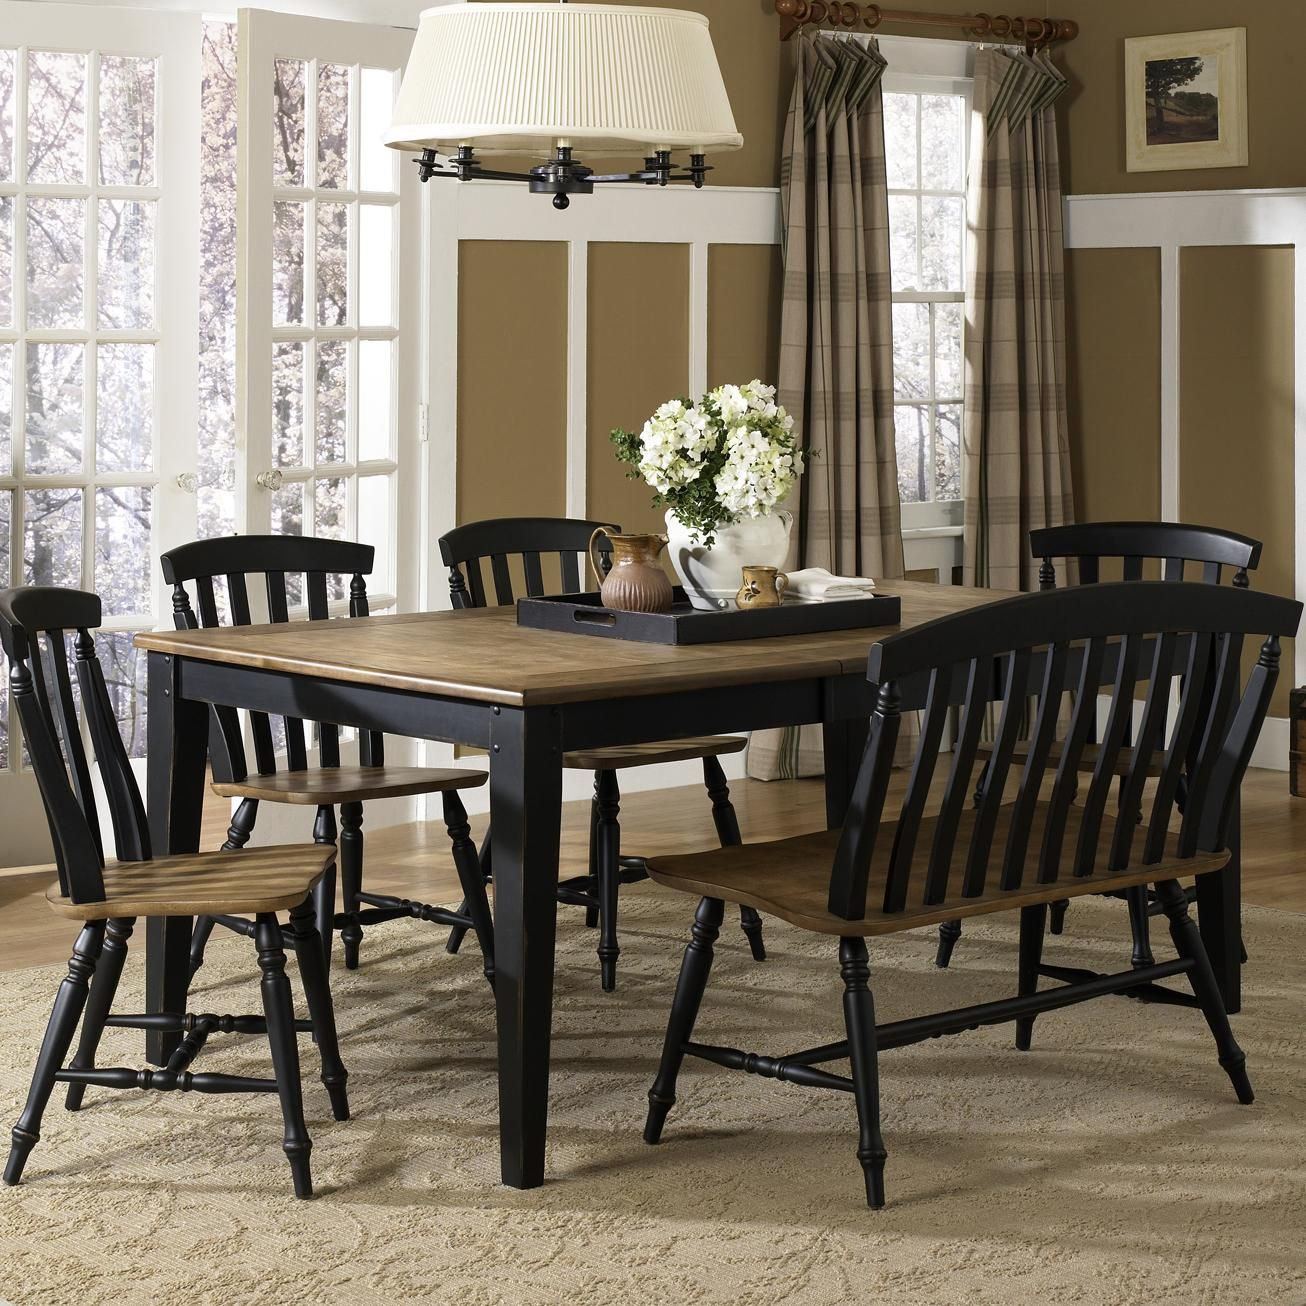 Seaside Black 6 Piece Dining Table Set With Chairs And